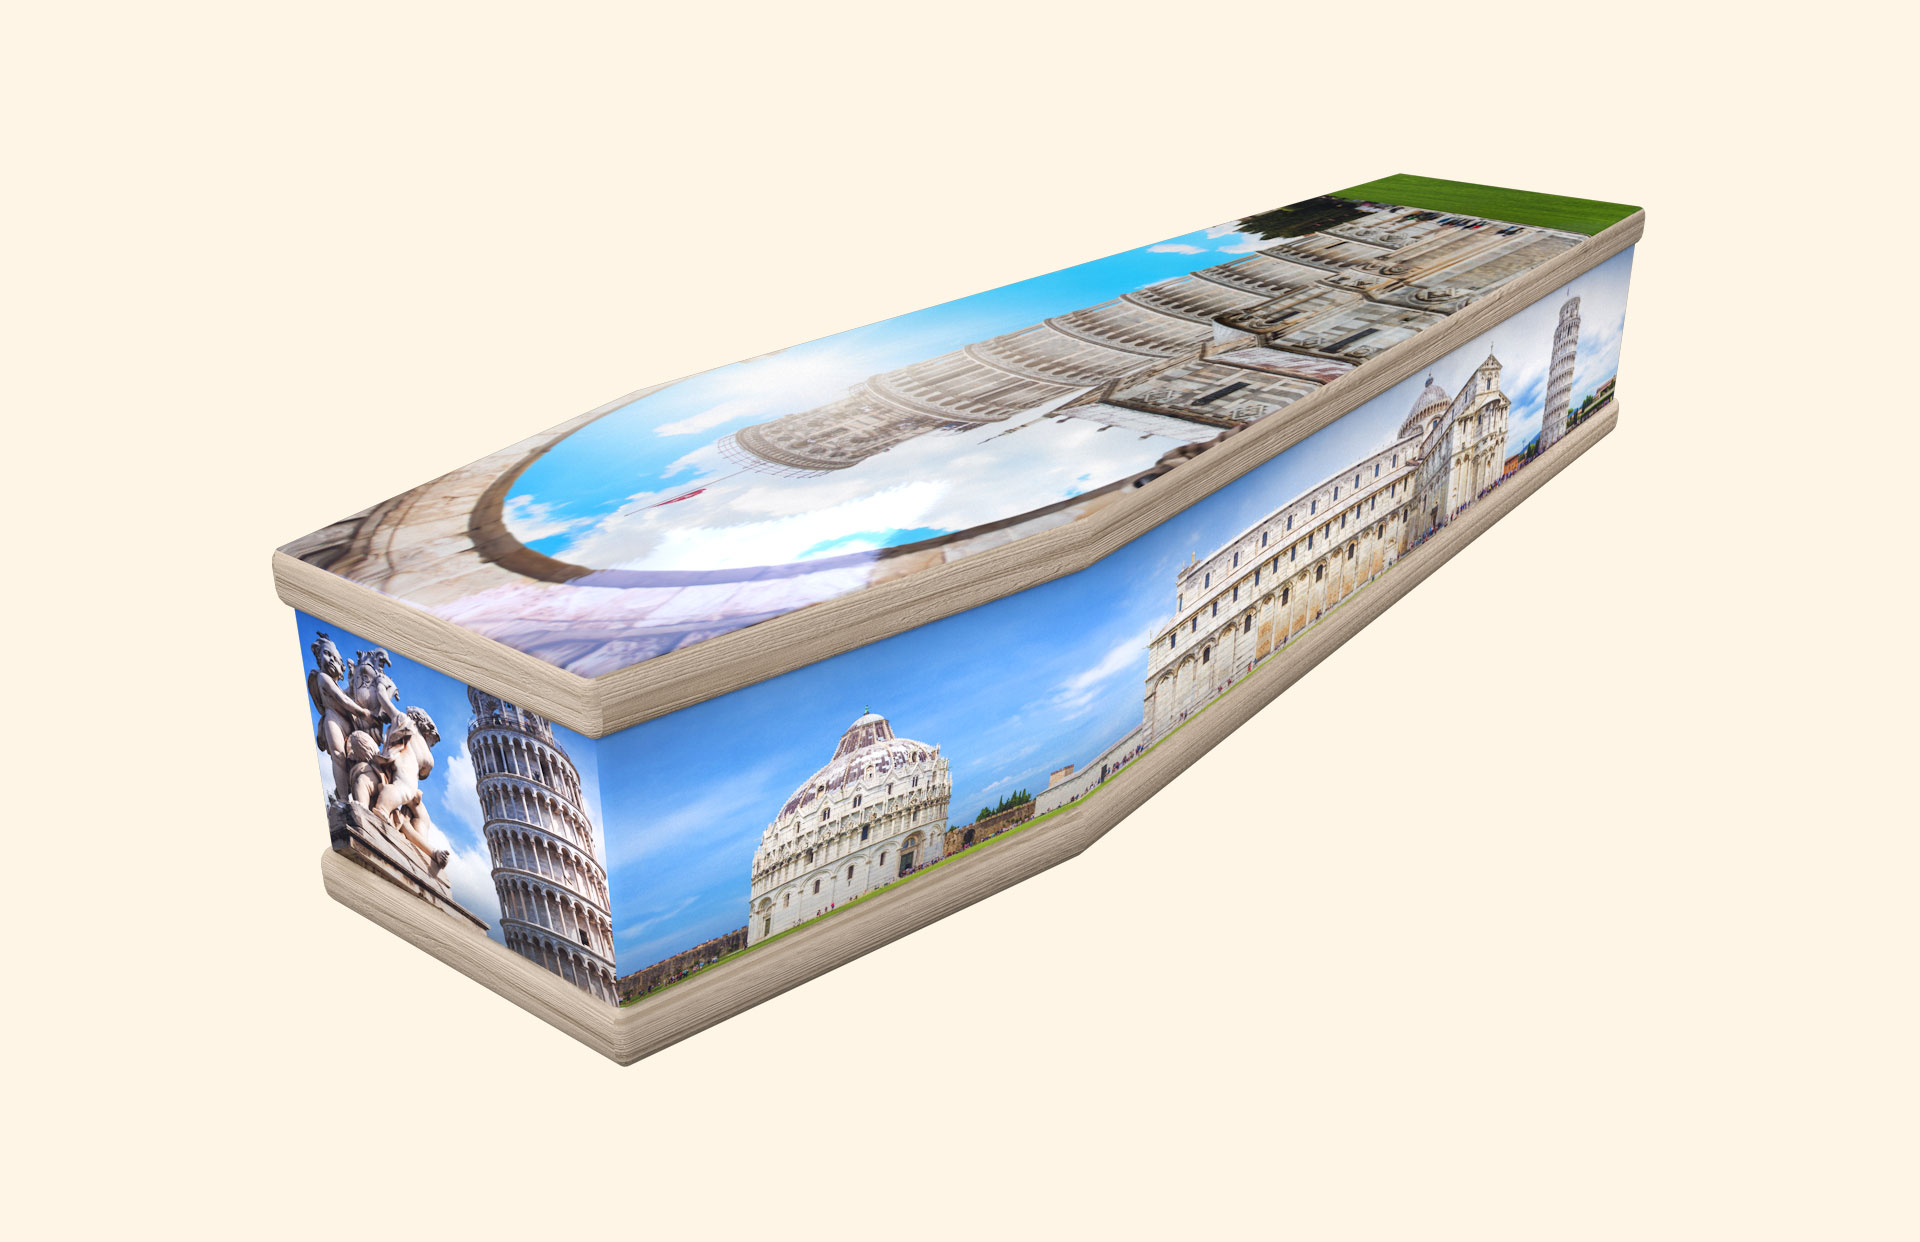 Leaning Tower of Pisa classic coffin